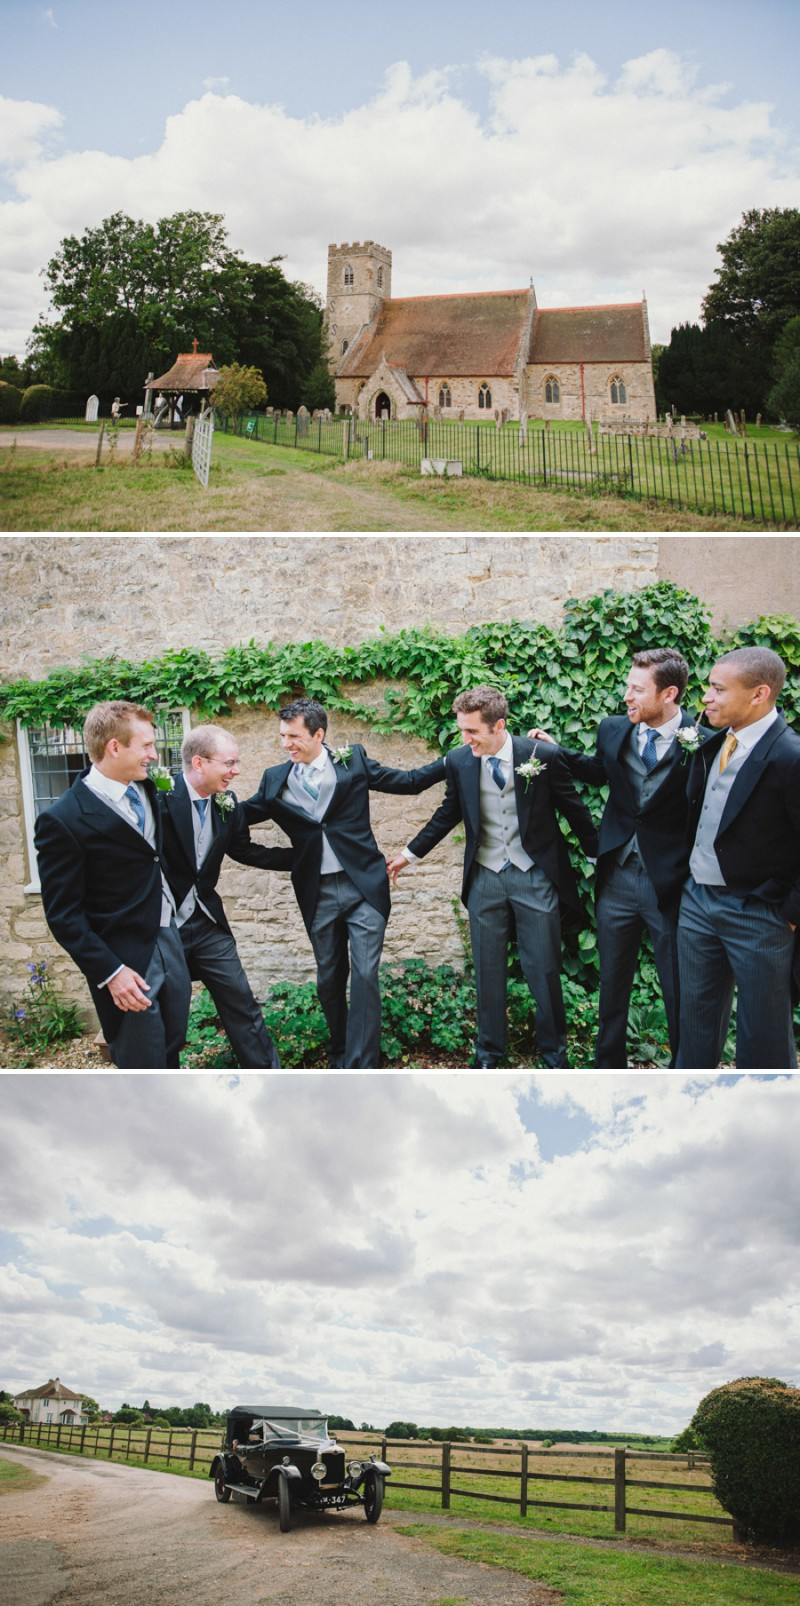 An English Back Garden Wedding With A Romona Keveza Dress And Jimmy Choos And A Pink Rose Bouquet With Mint Bridesmaid Dresses By KRAAN Wedding Photography._0003